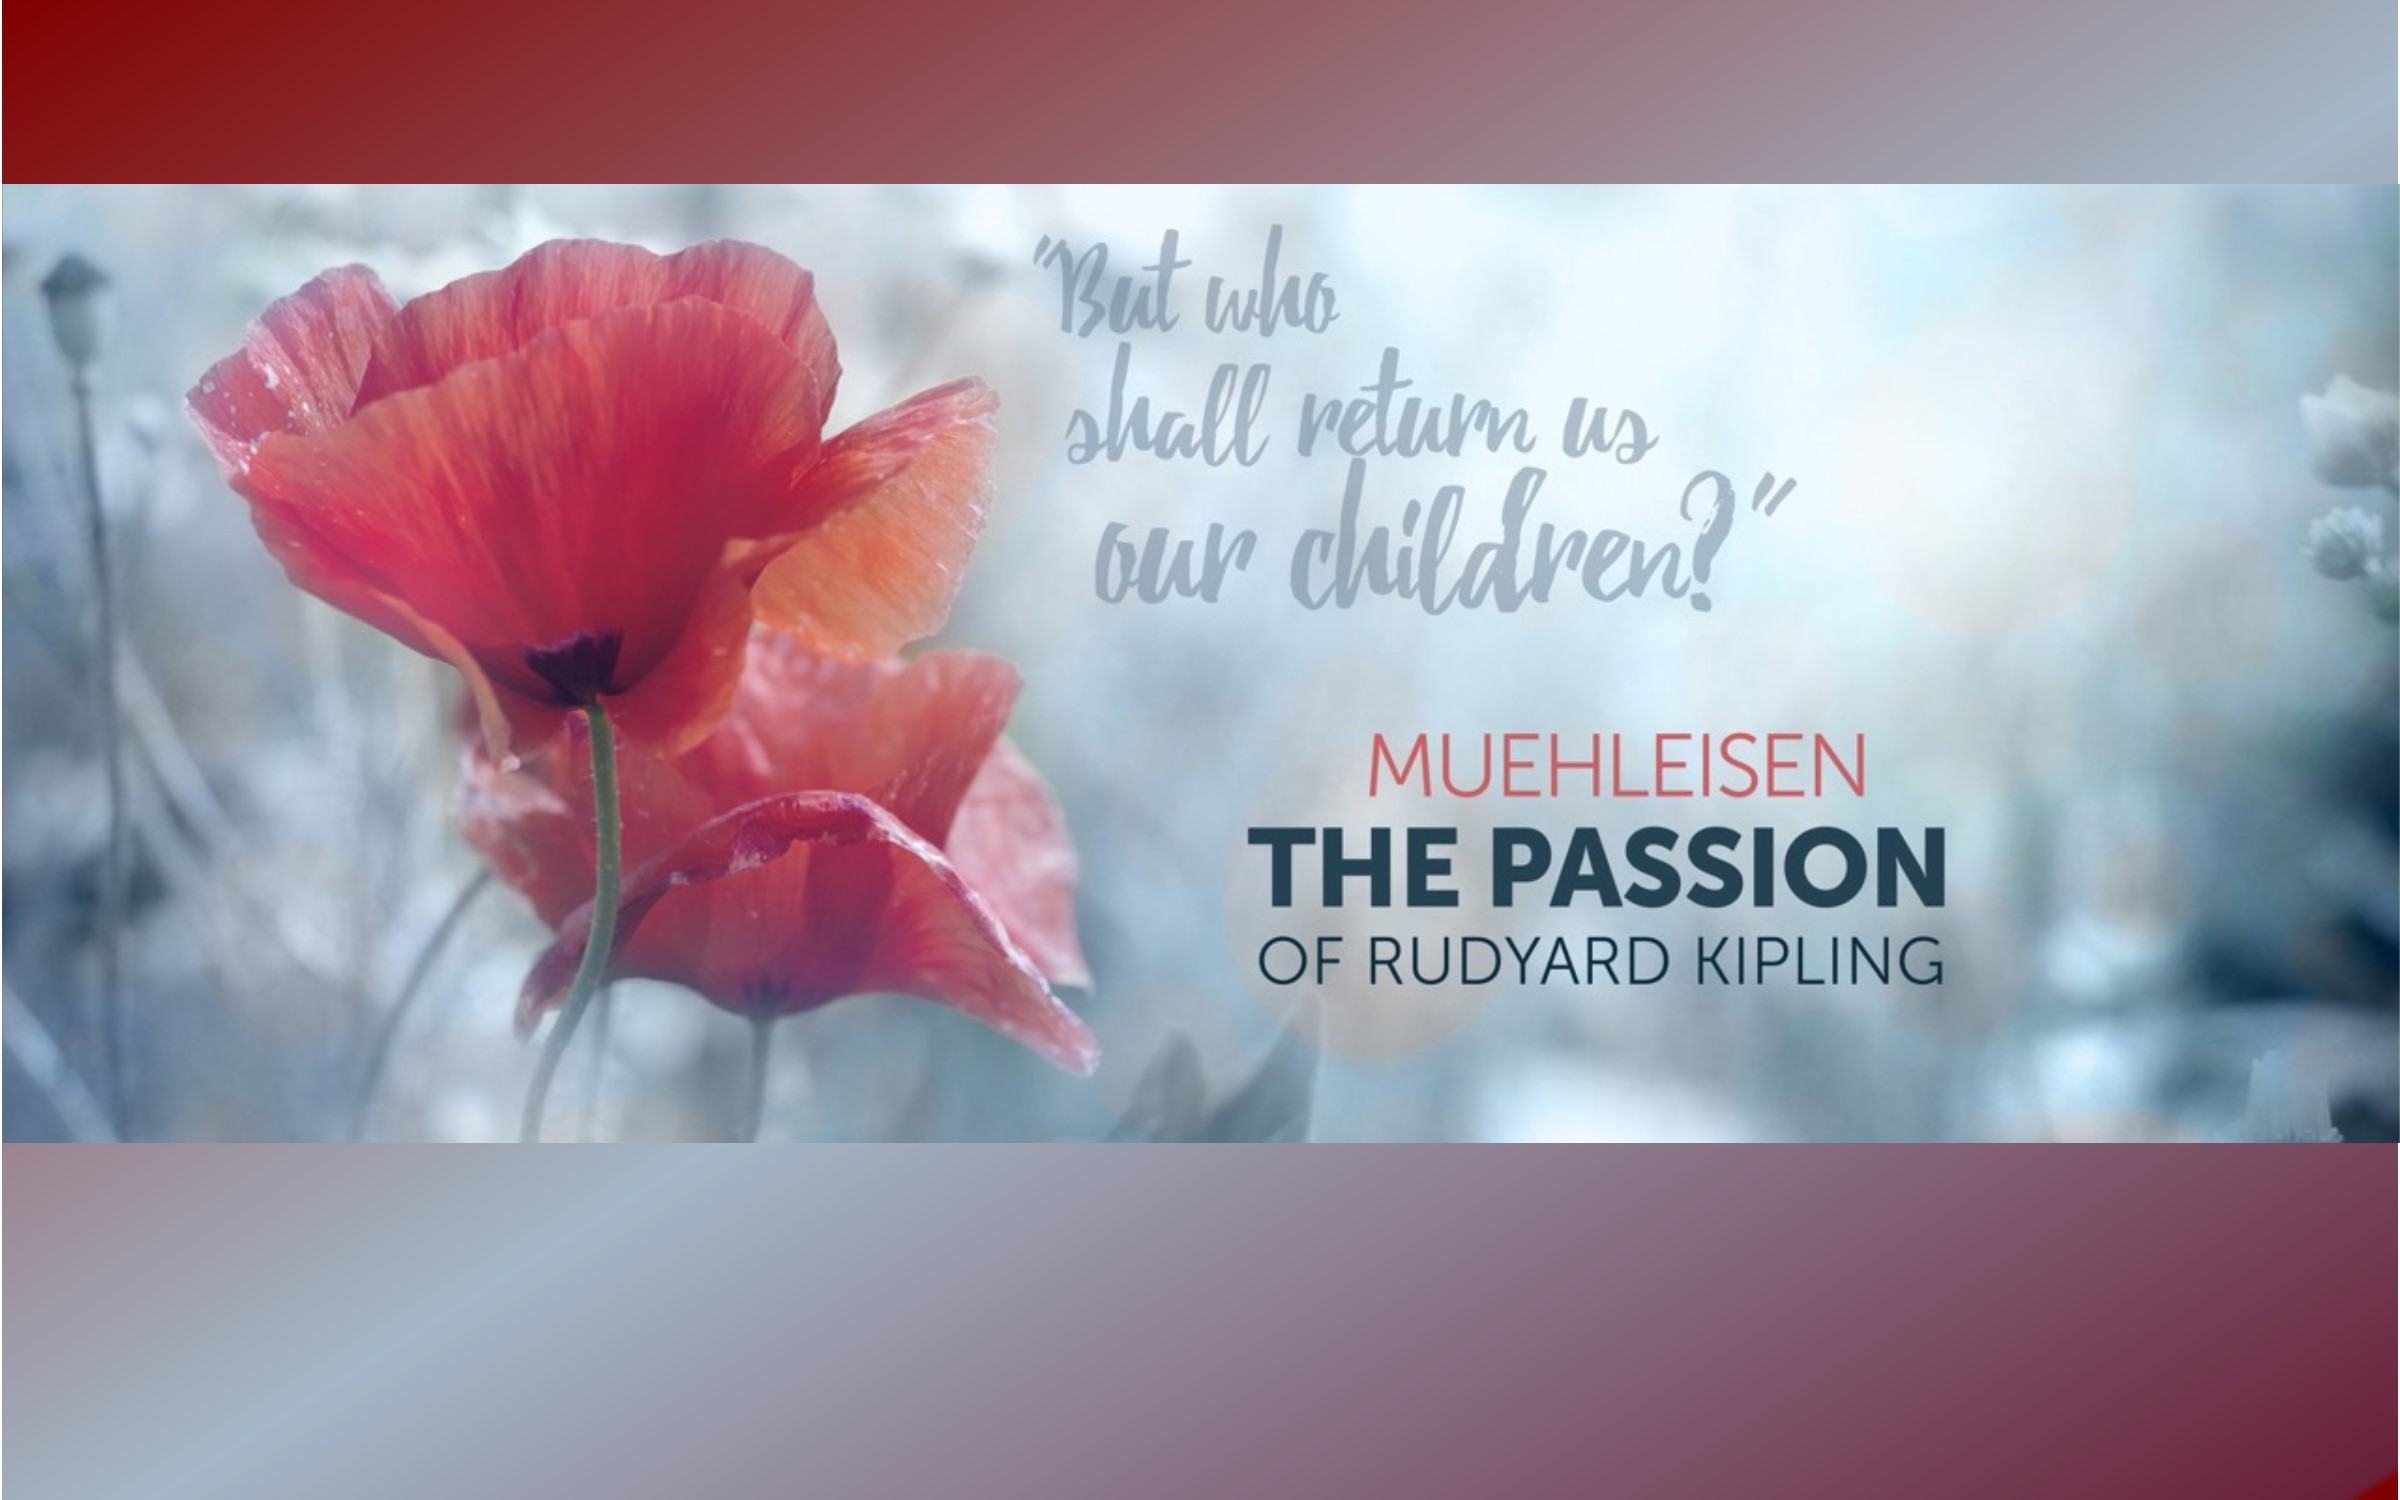 THE PASSION of Rudyard Kipling by John Muehleisen